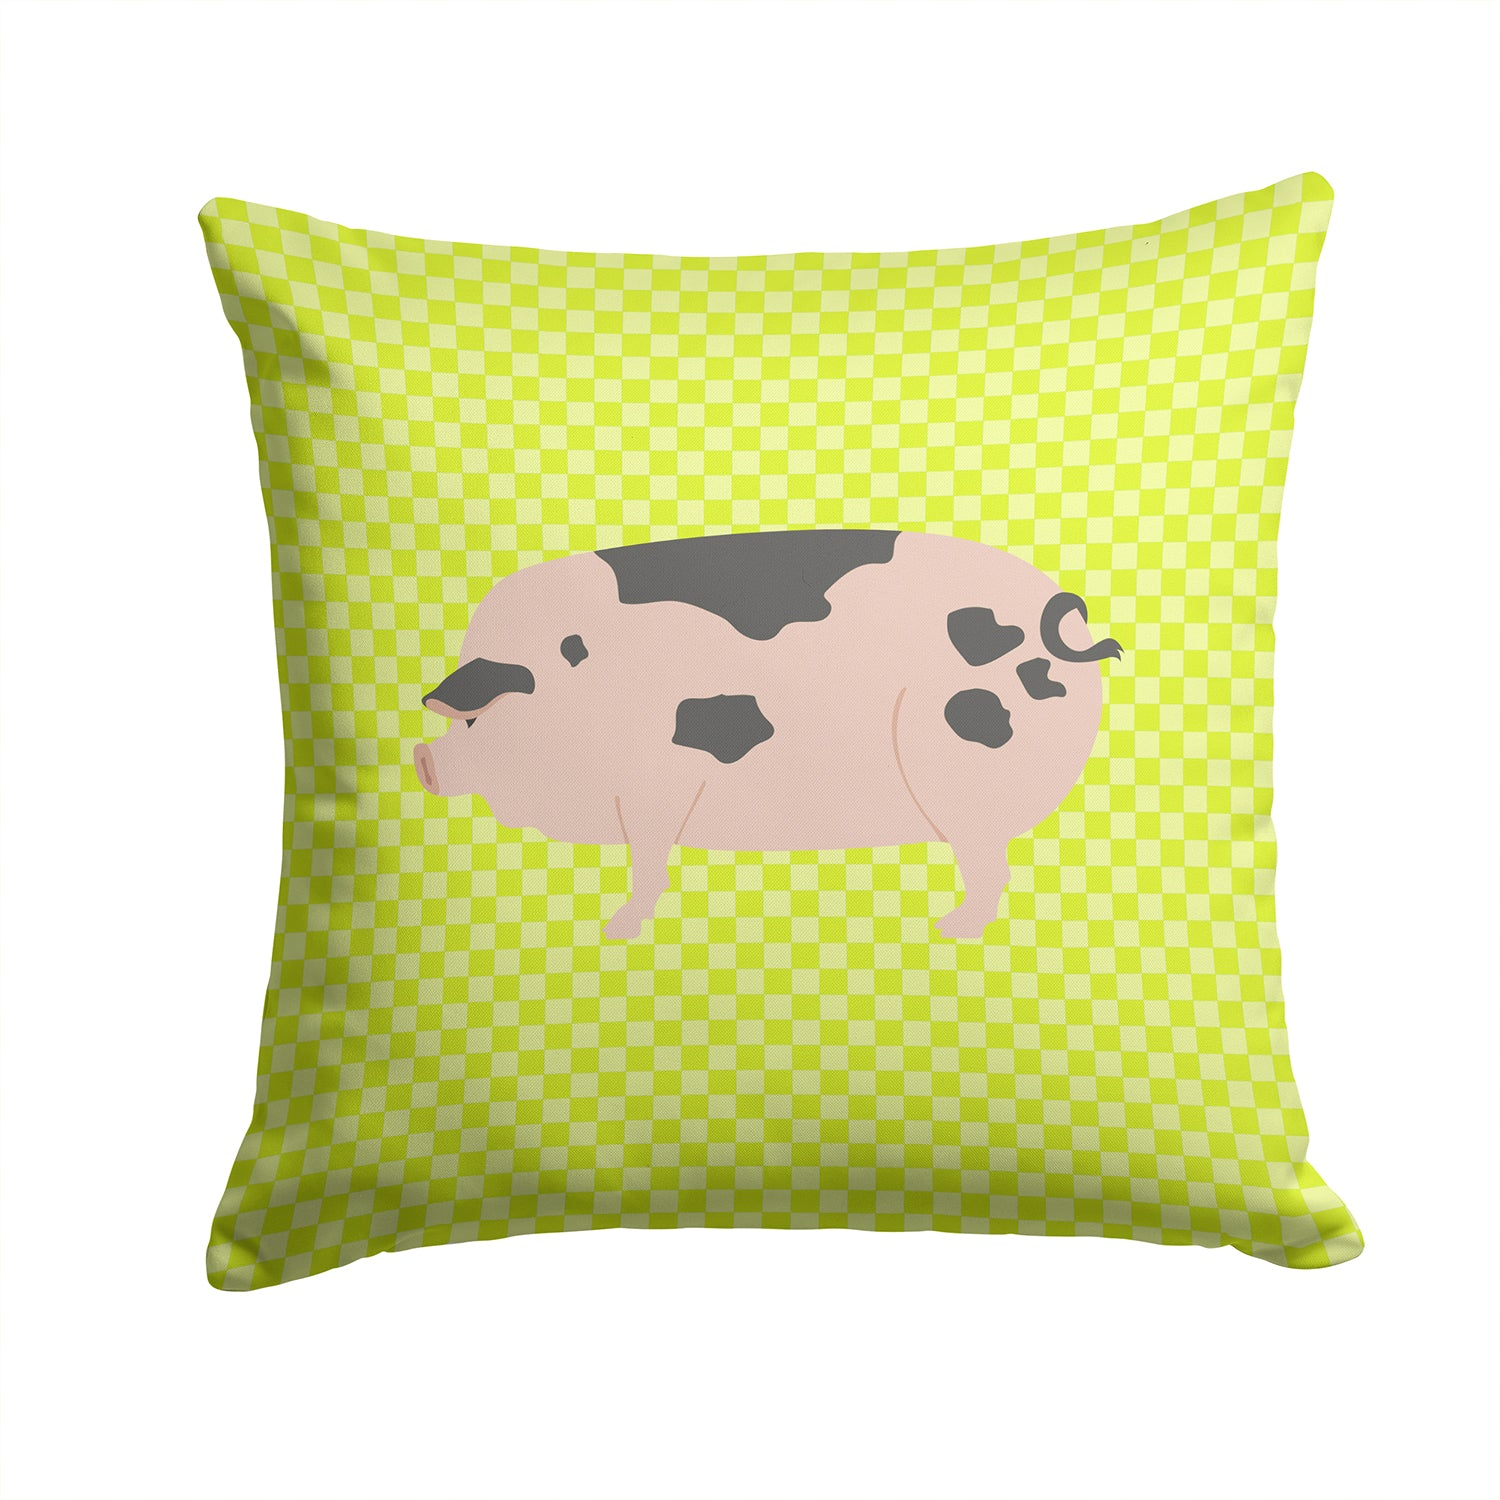 Gloucester Old Spot Pig Green Fabric Decorative Pillow BB7766PW1414 by Caroline's Treasures